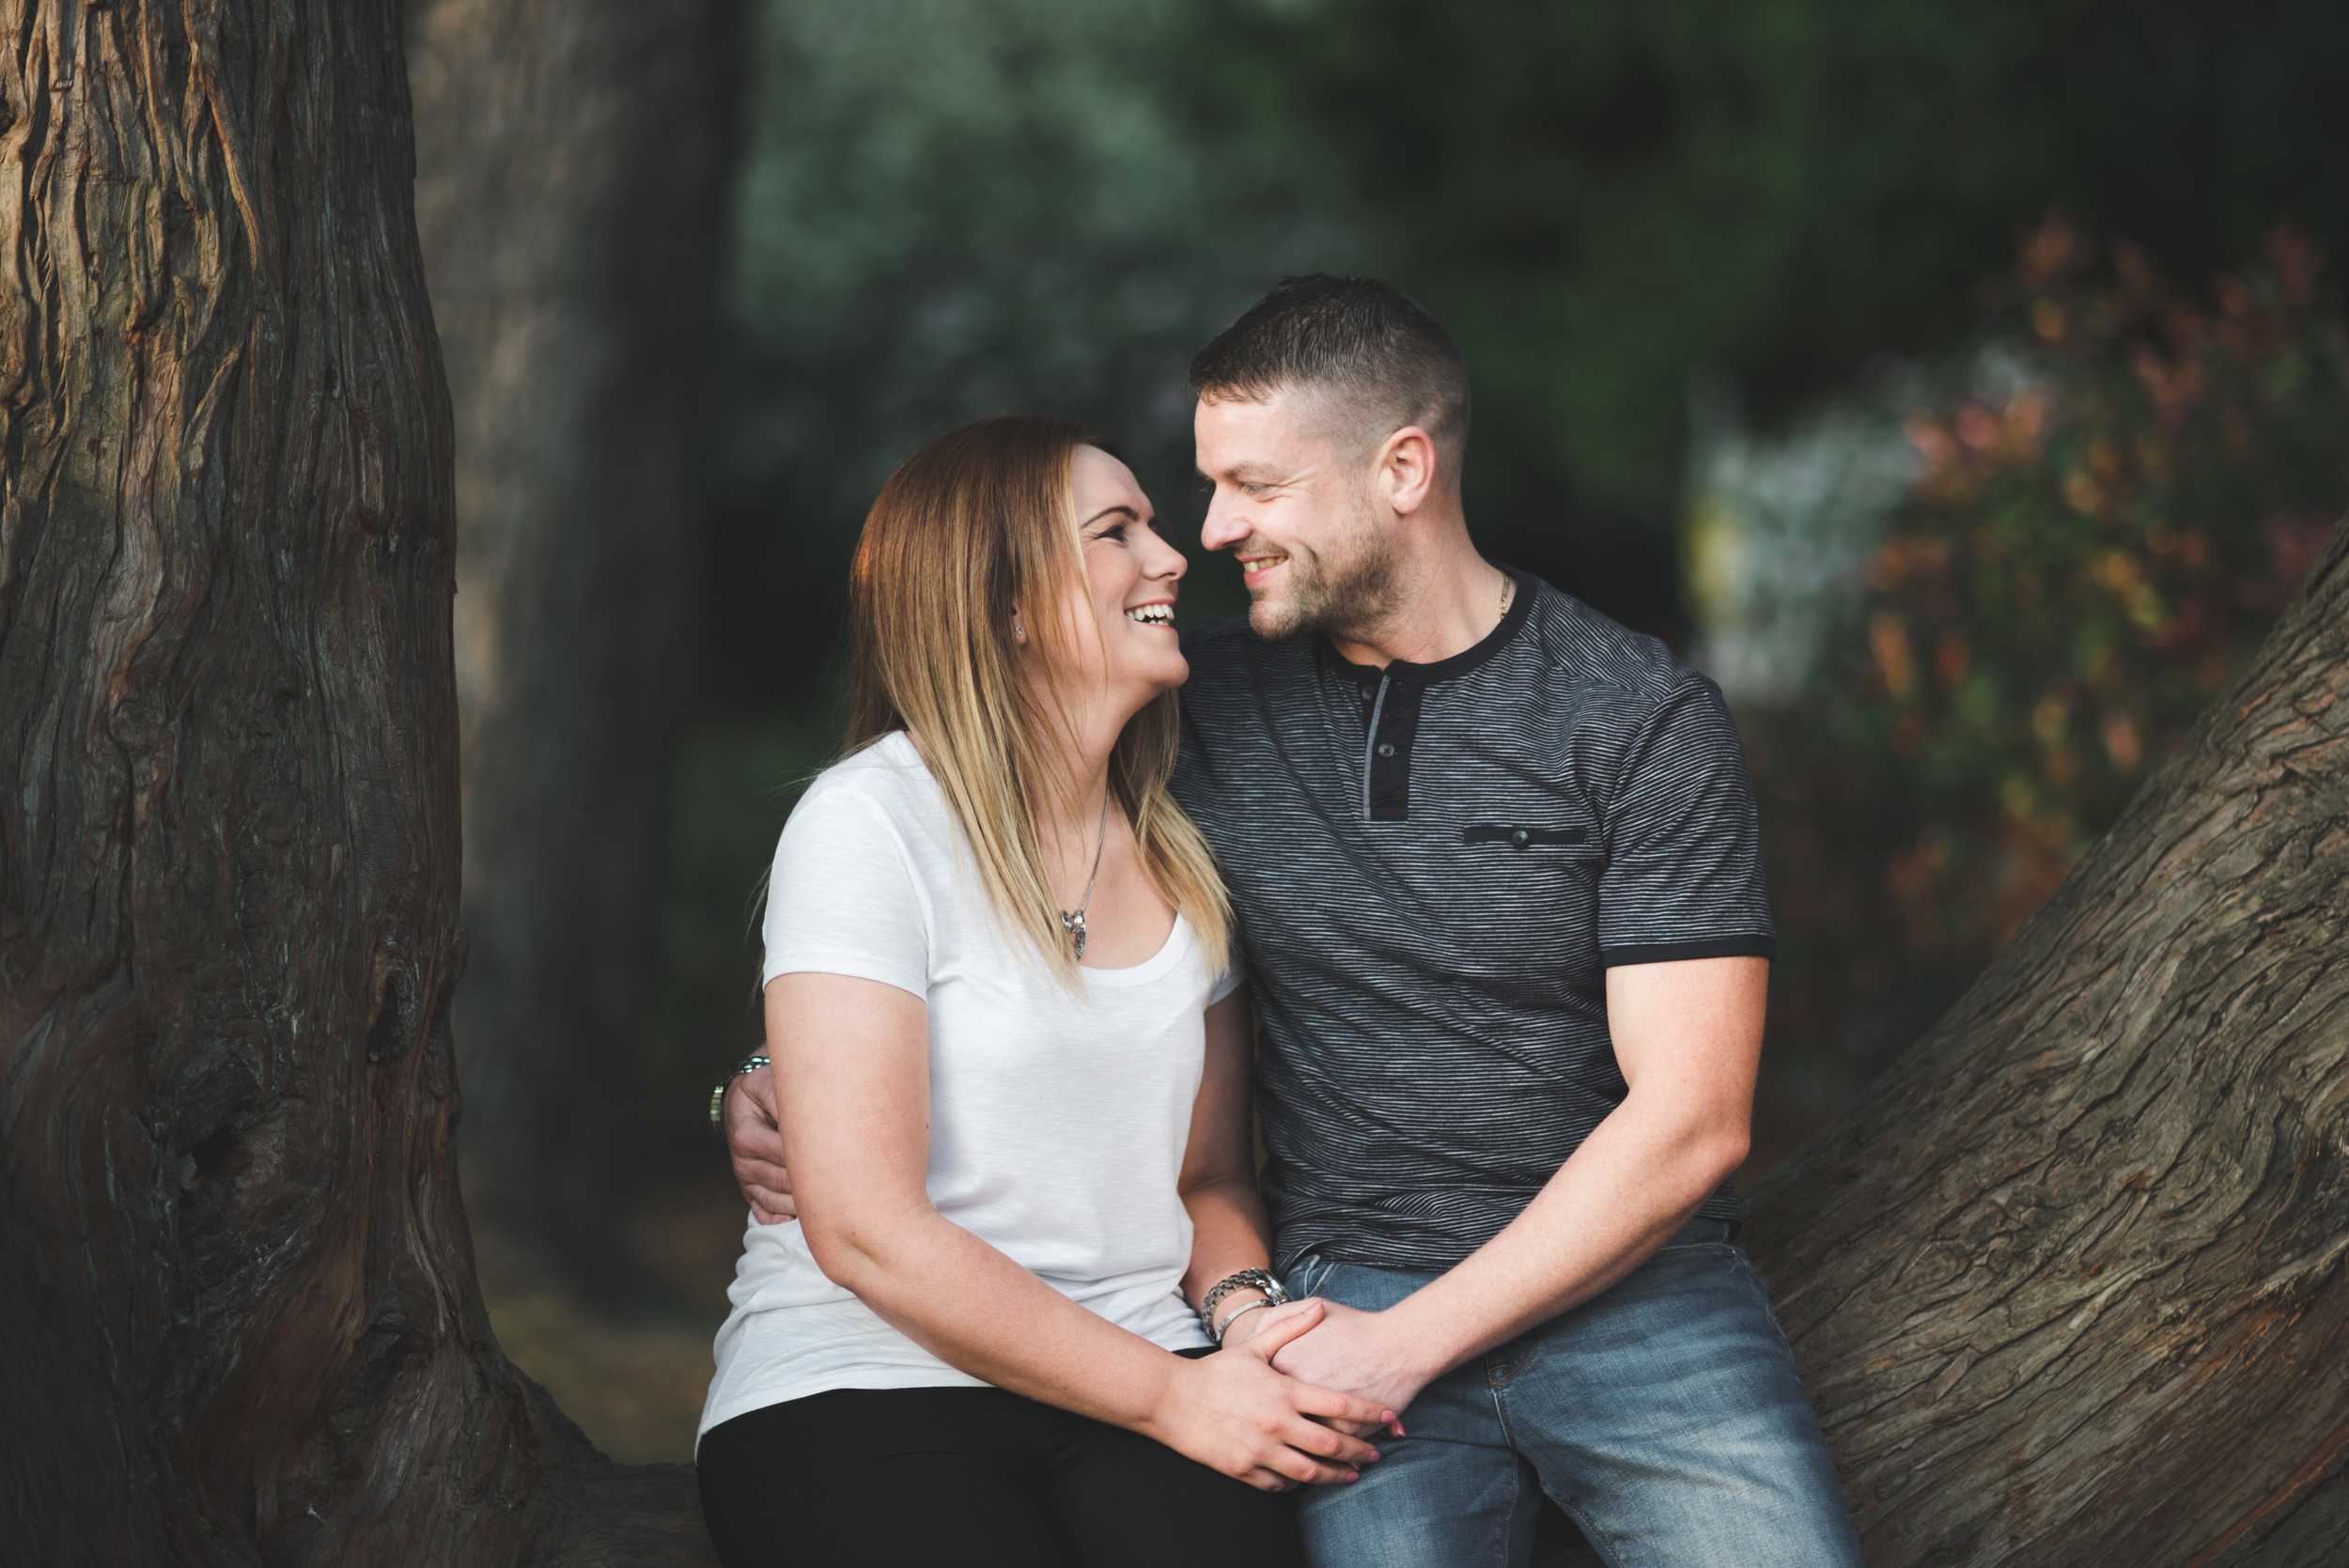 Nikki_Chris_engagement_shoot_belfast_photographer_pure_photo_ni